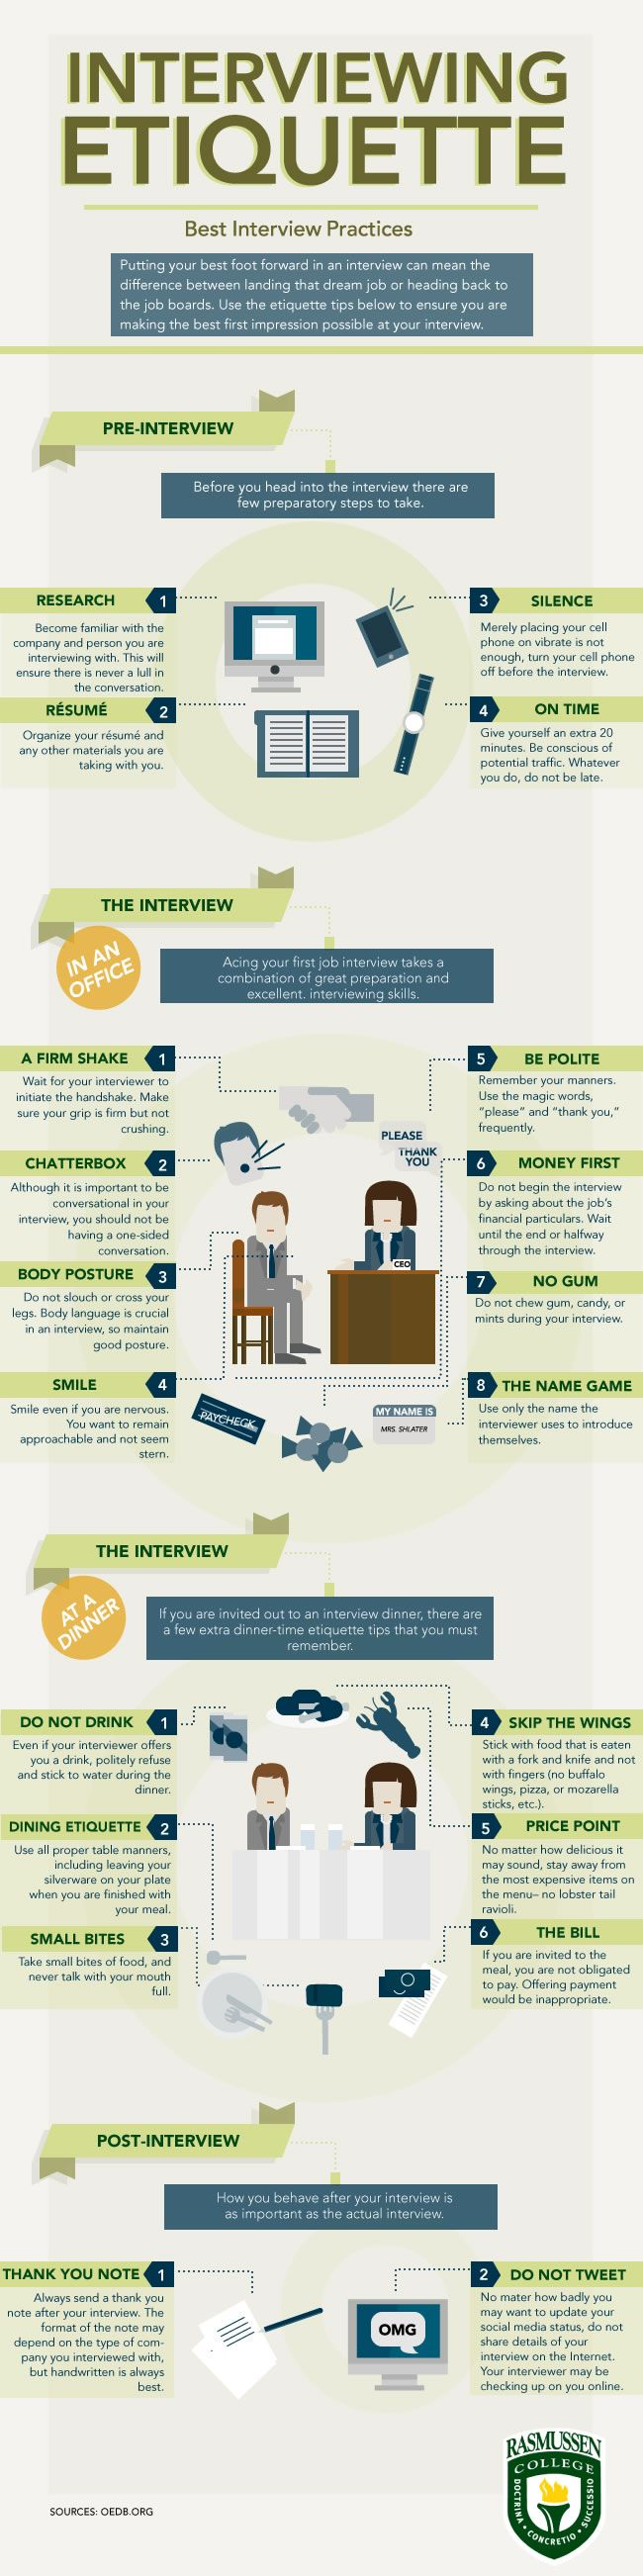 interview etiquette successful interview how to be successful in interview good interview techniques - How To Have A Good Interview Tips For A Good Interview